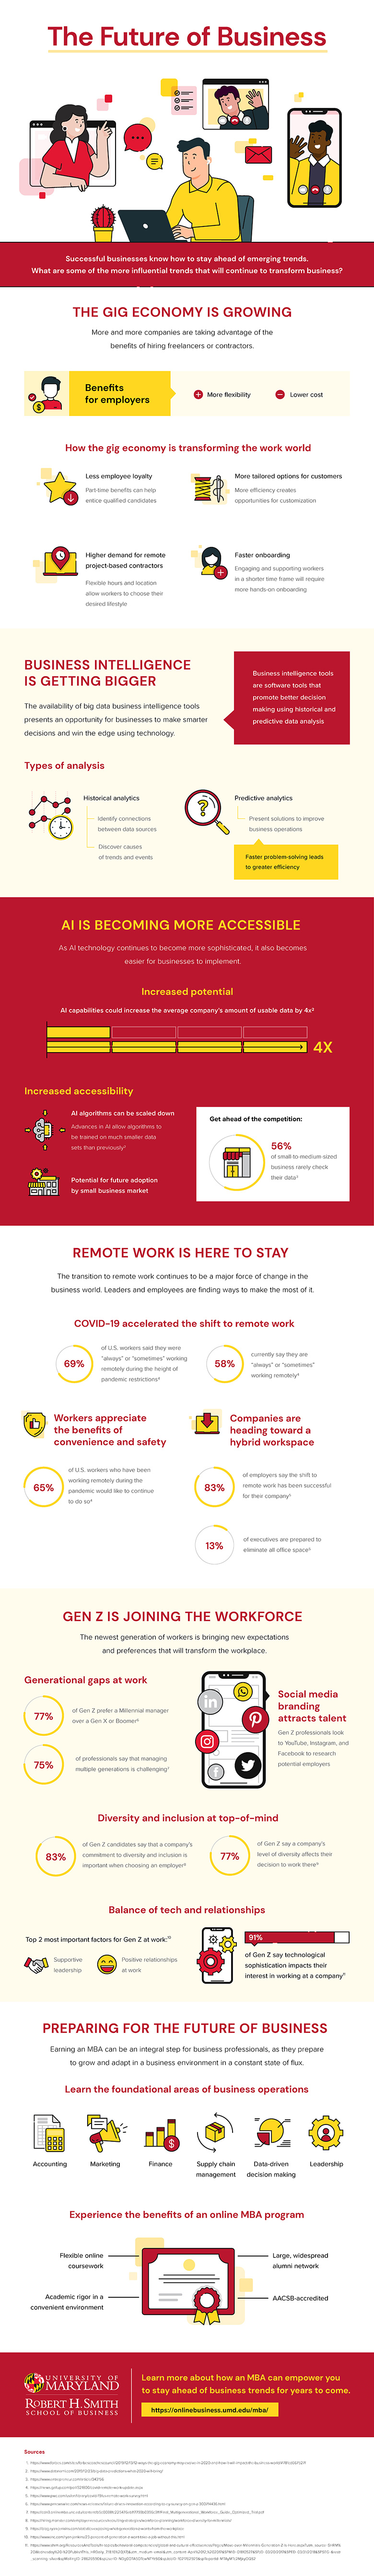 An infographic about how to thrive in a dynamic business environment by UMD Smith School of Business.